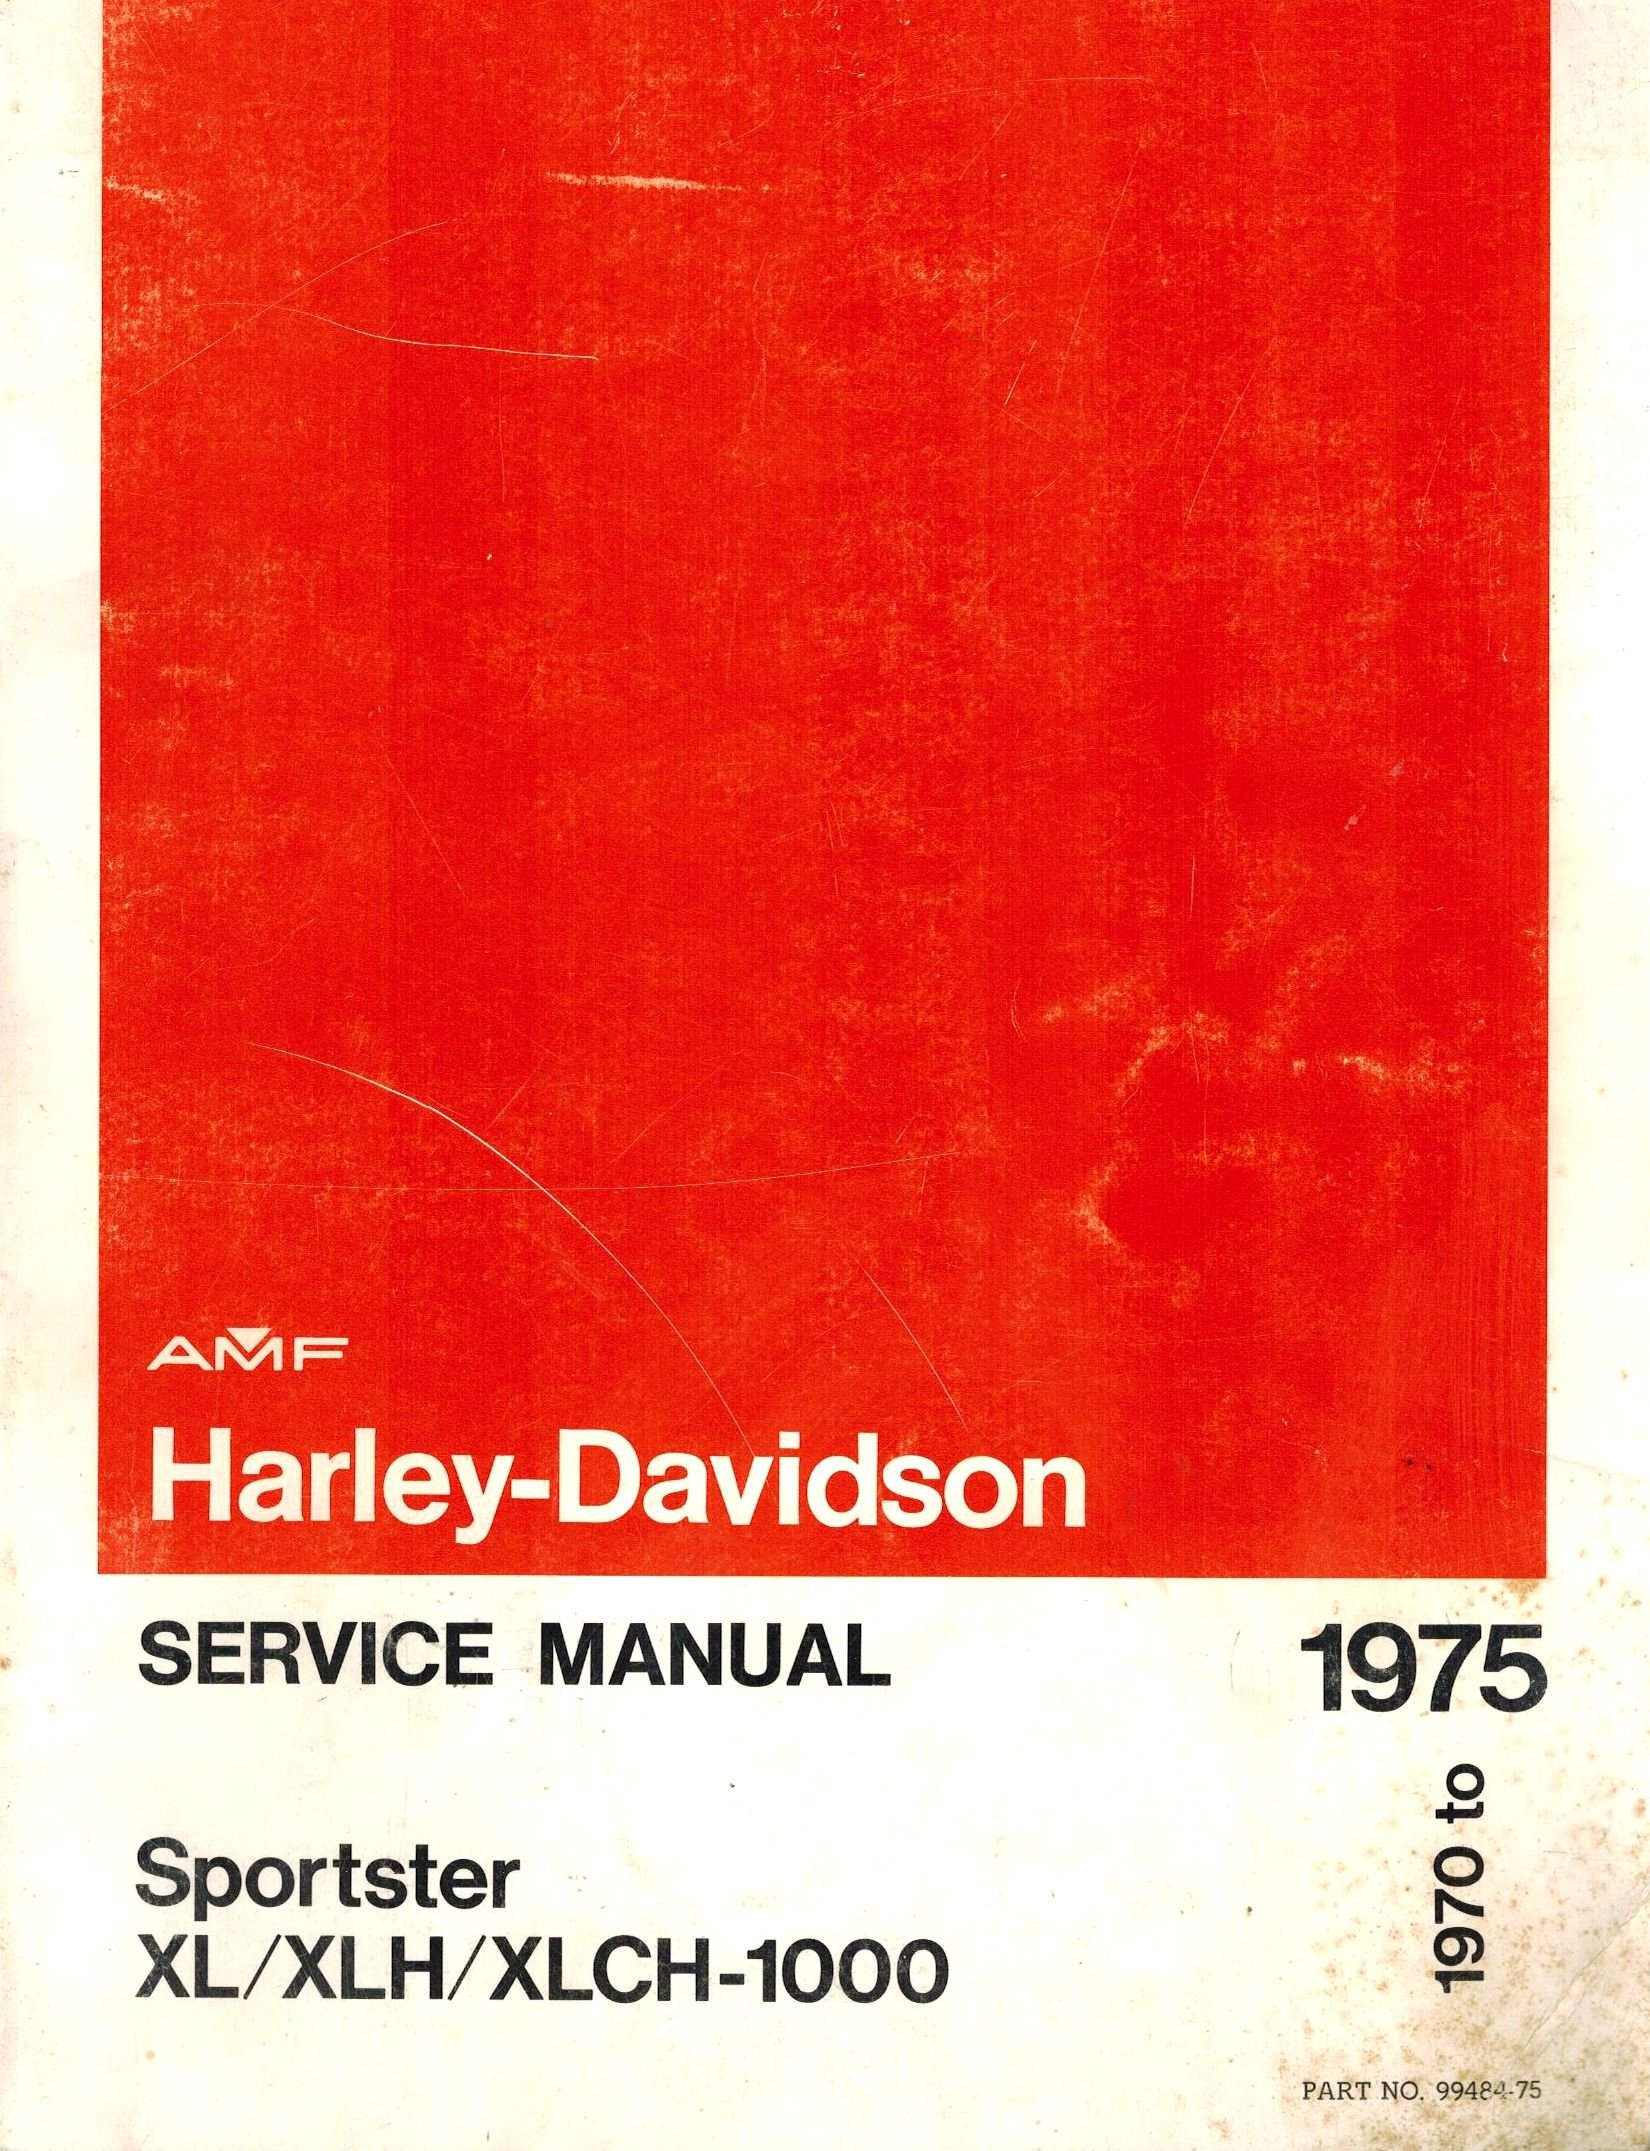 Harley Davidson Service Manual 1970 to 1975 Sportster Xl/xlh/xlch-1000:  Amazon.com: Books